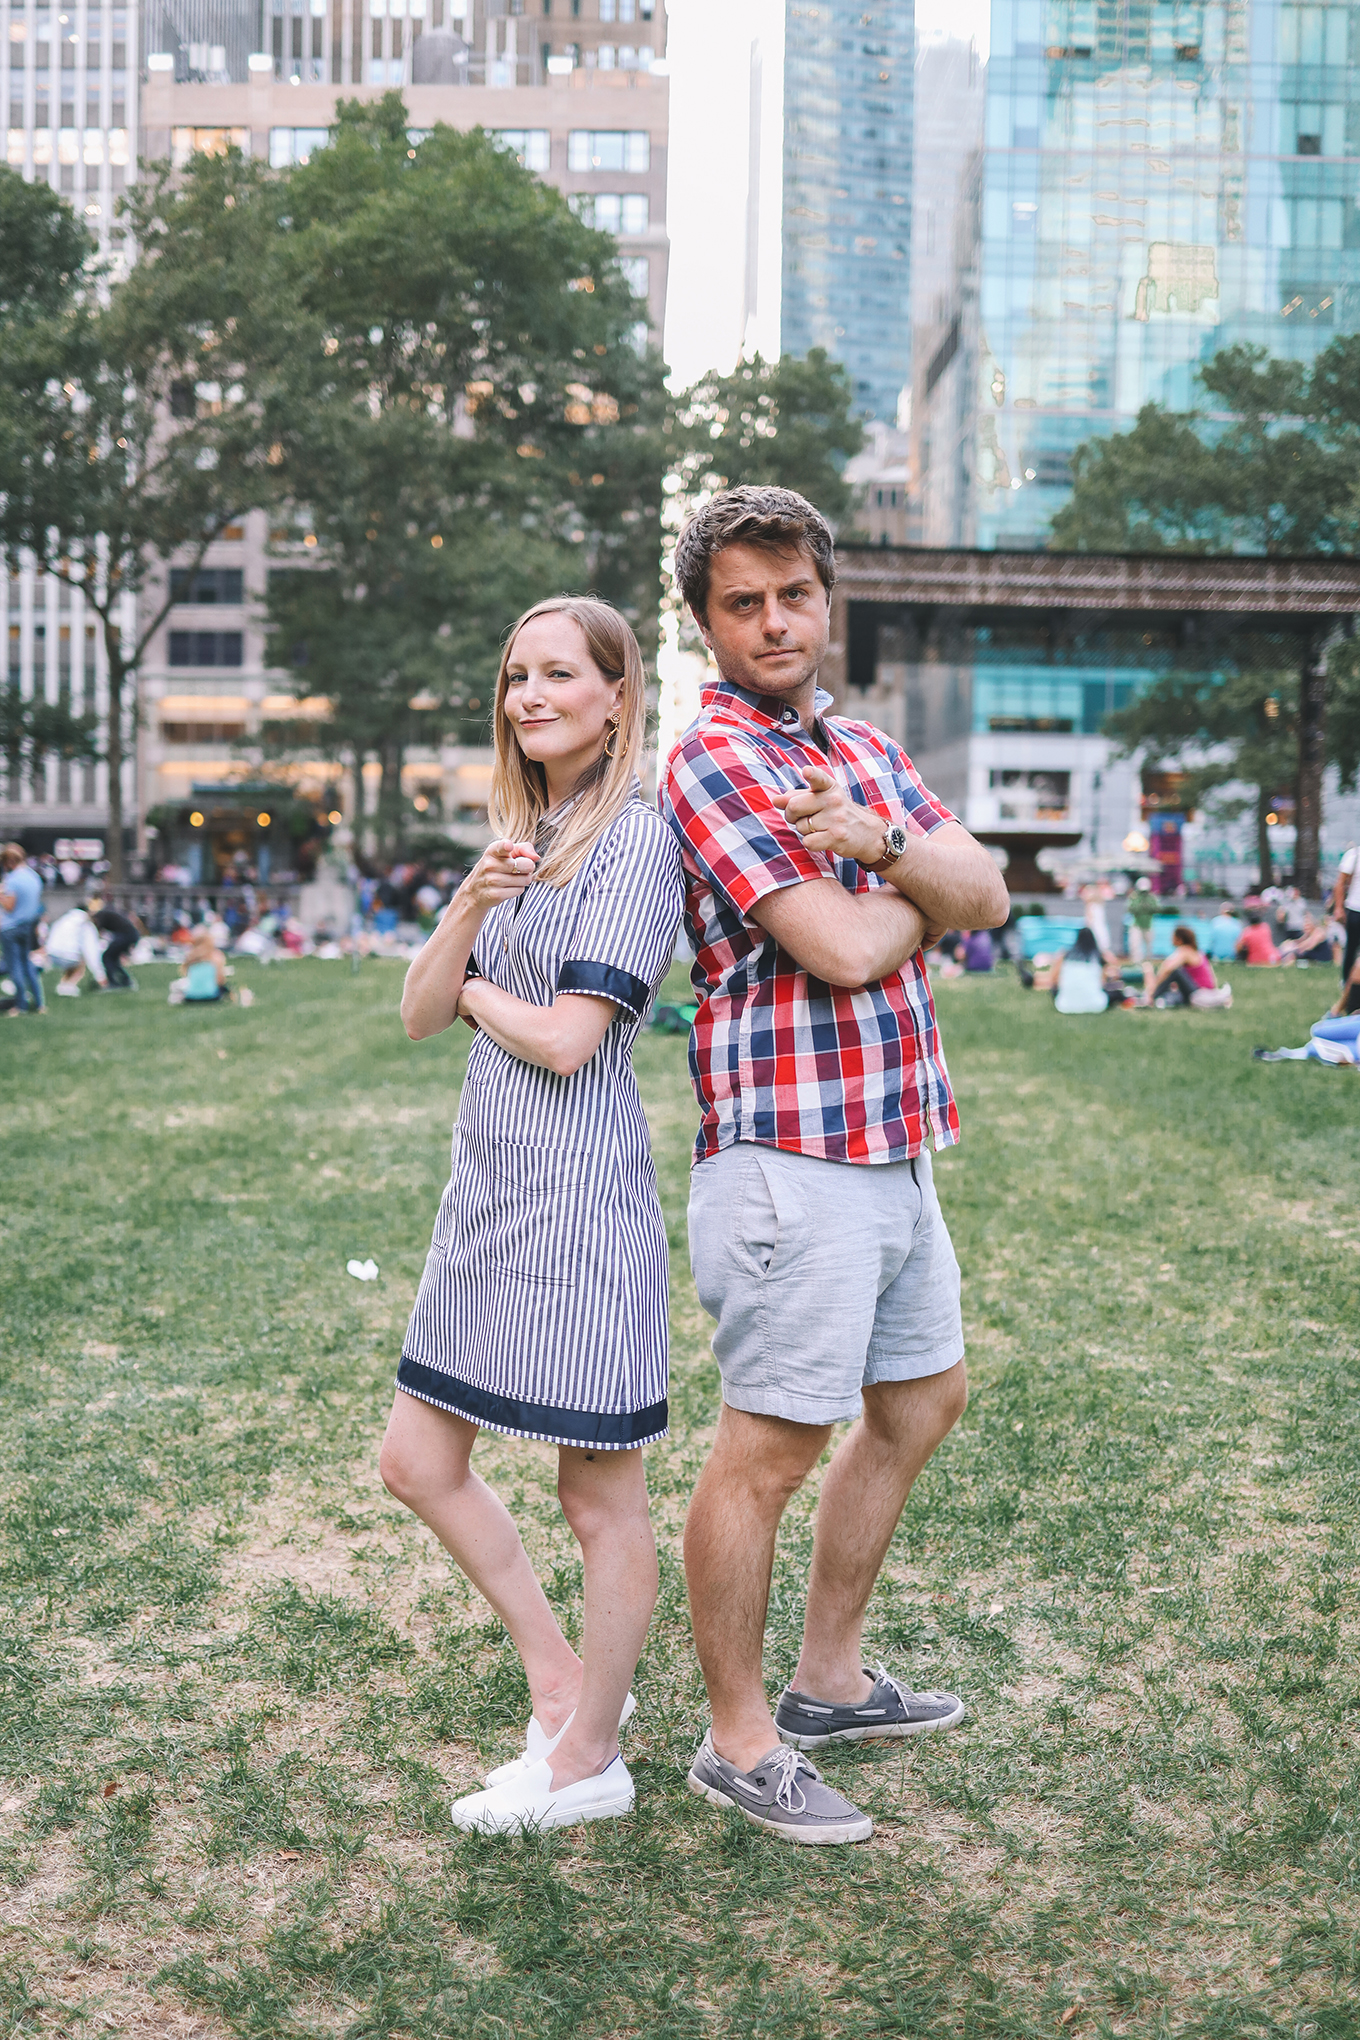 Kelly in an easy shirtdress and her husband in a plaid shirt